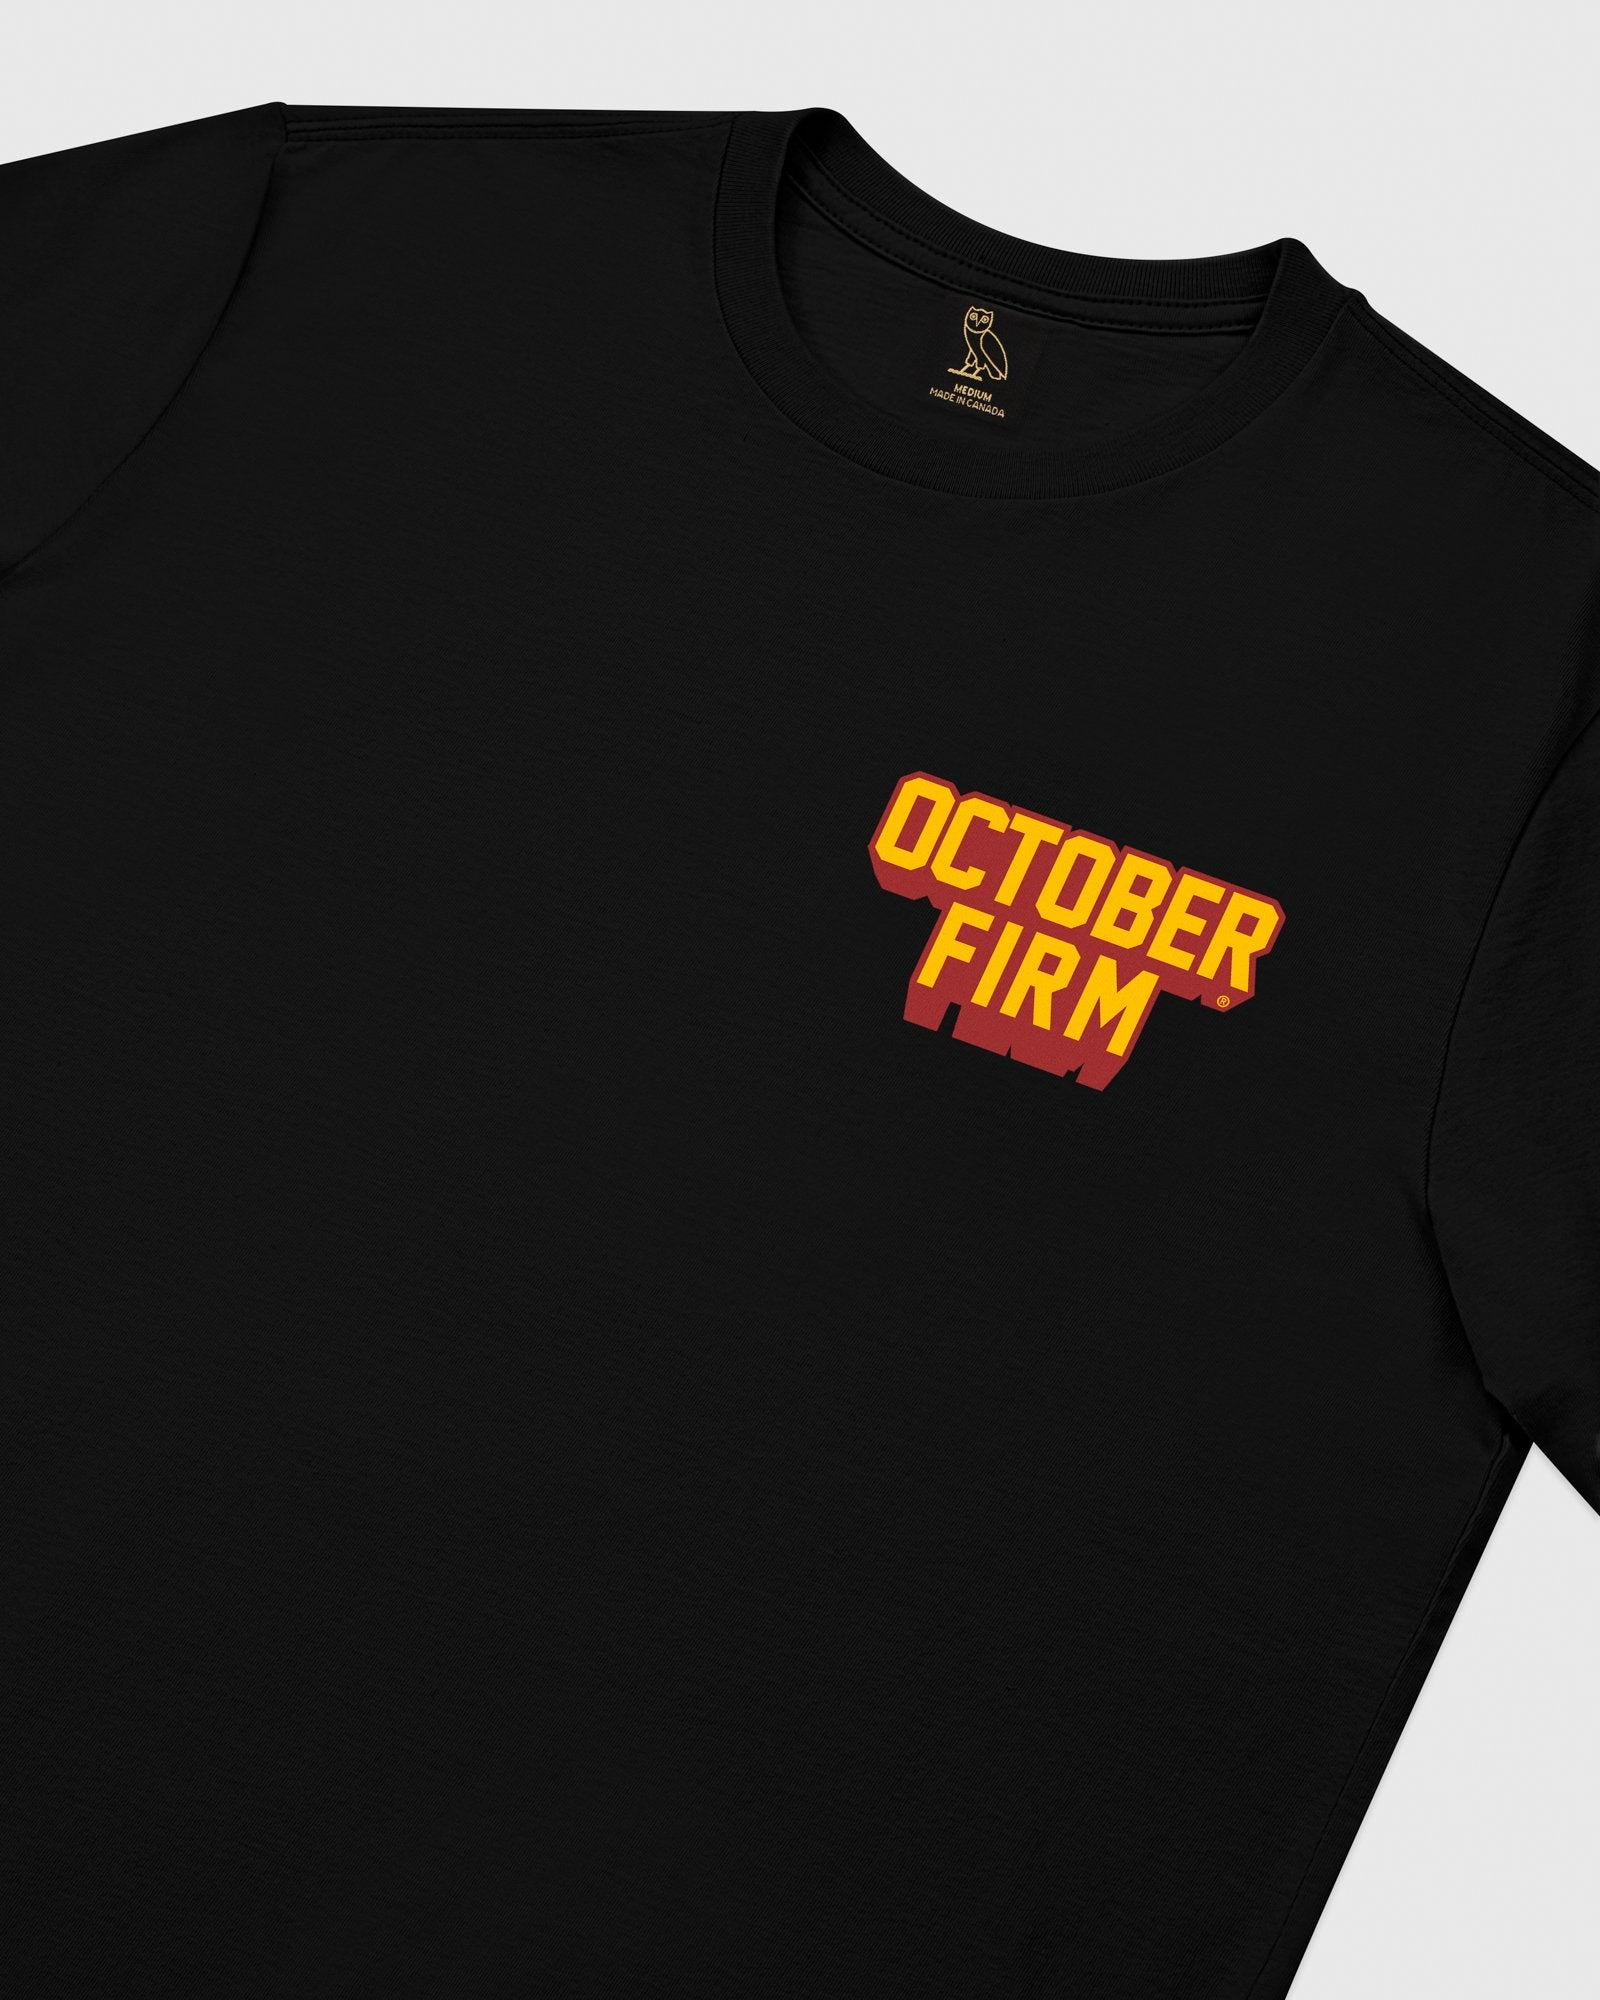 OCTOBER FIRM SHADOW LONGSLEEVE T-SHIRT - BLACK IMAGE #4